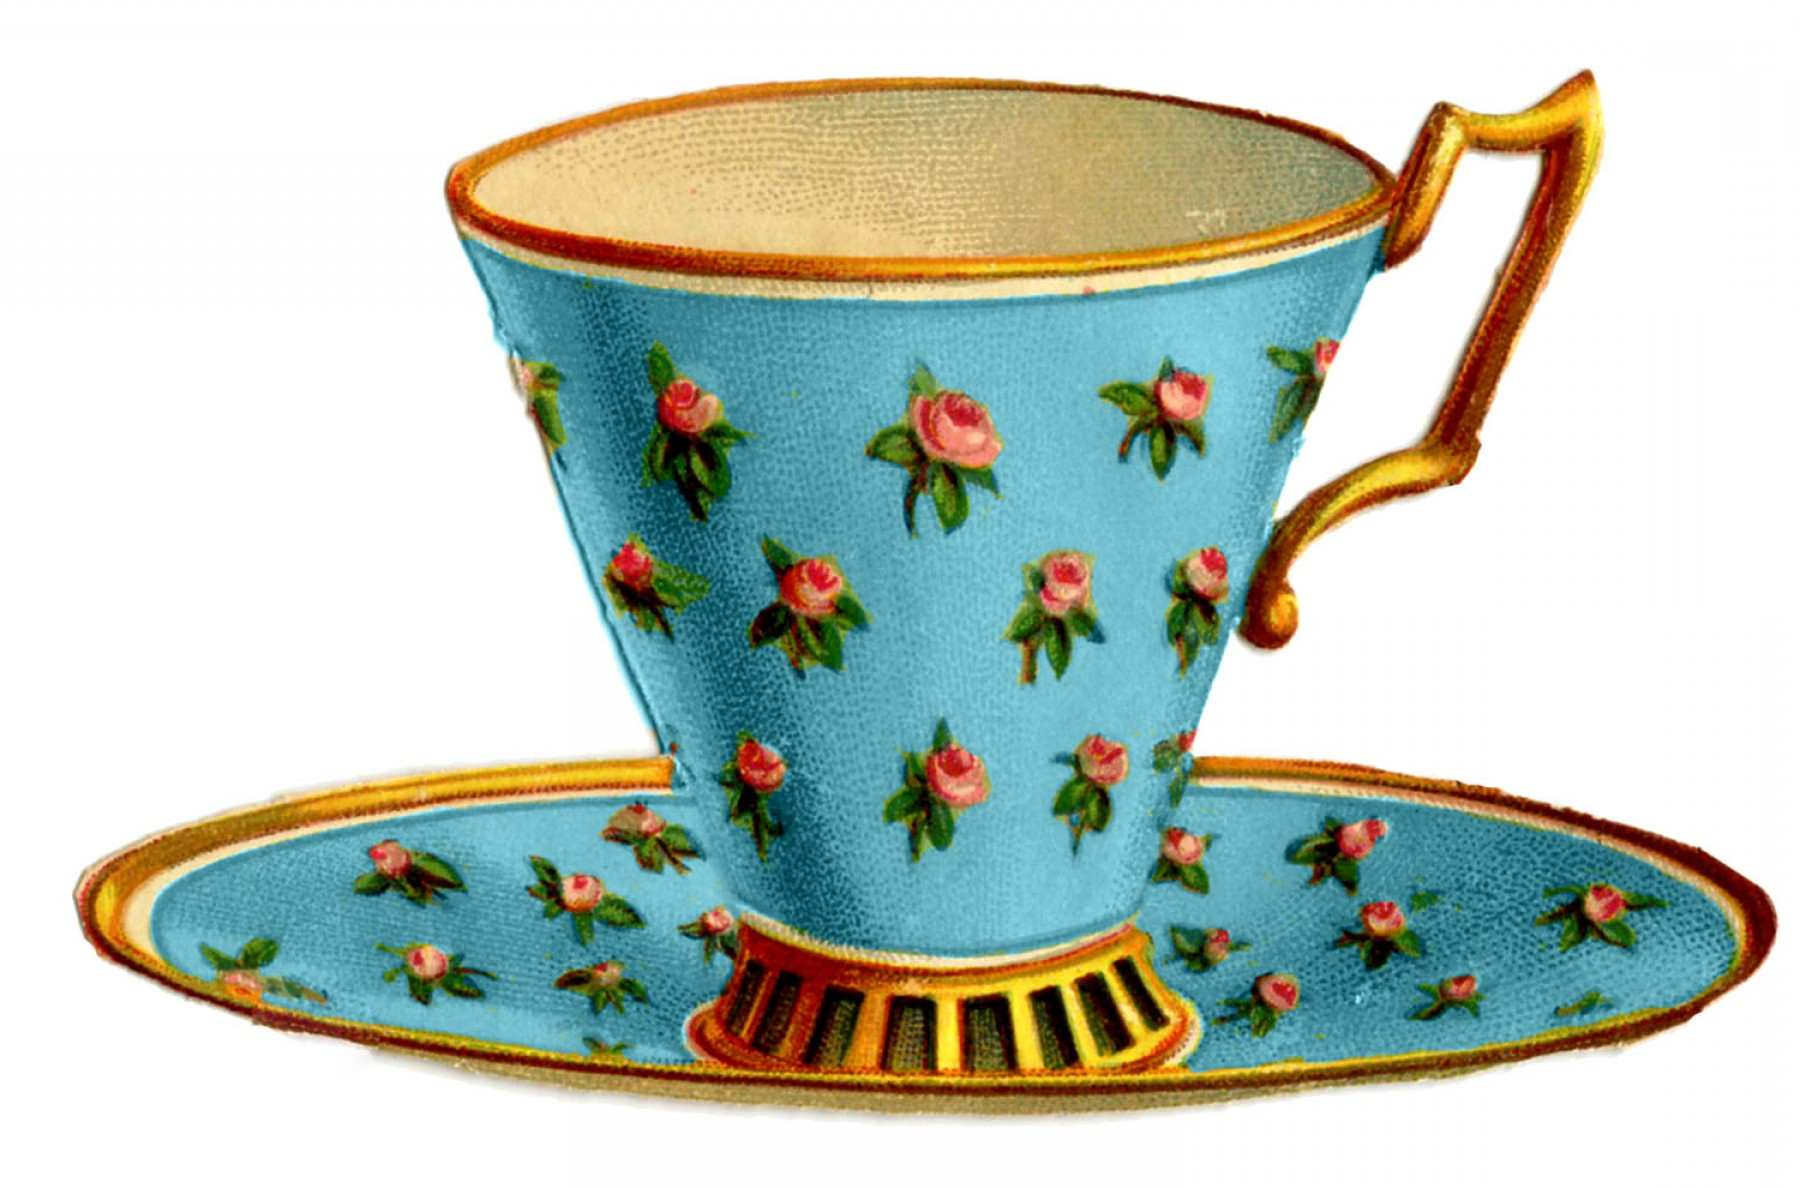 Vintage Tea Cup Vector: Vintage Graphics Pretty Teacups With Roses